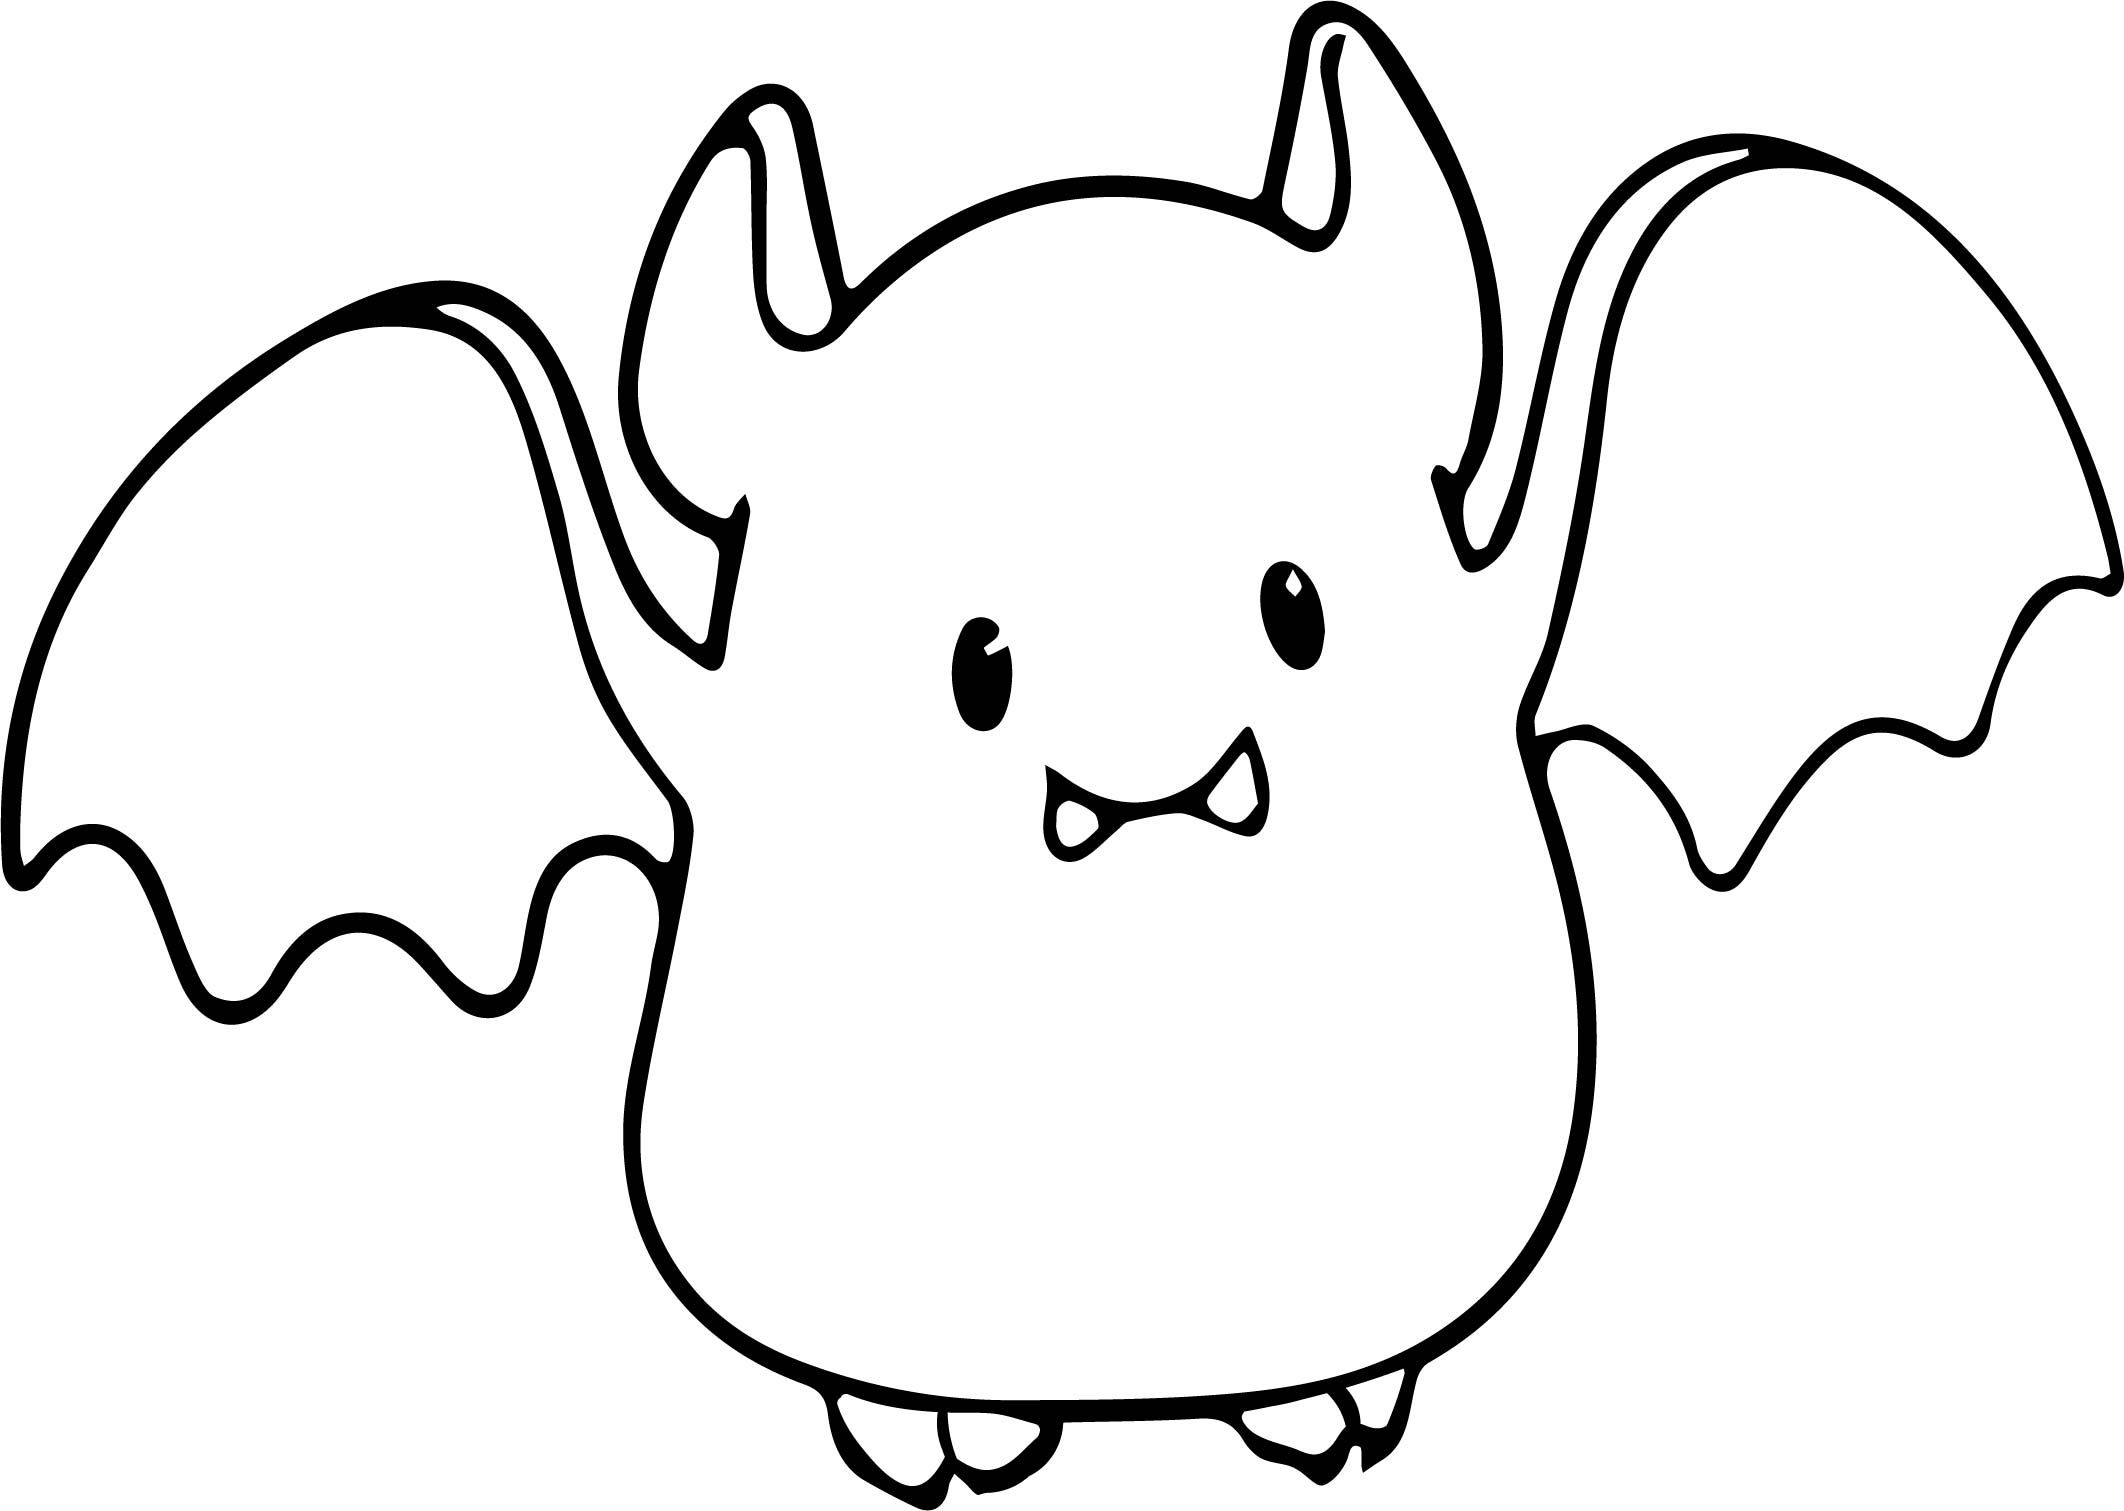 Cool Small Cute Baby Cartoon Vampire Bat Coloring Page Bat